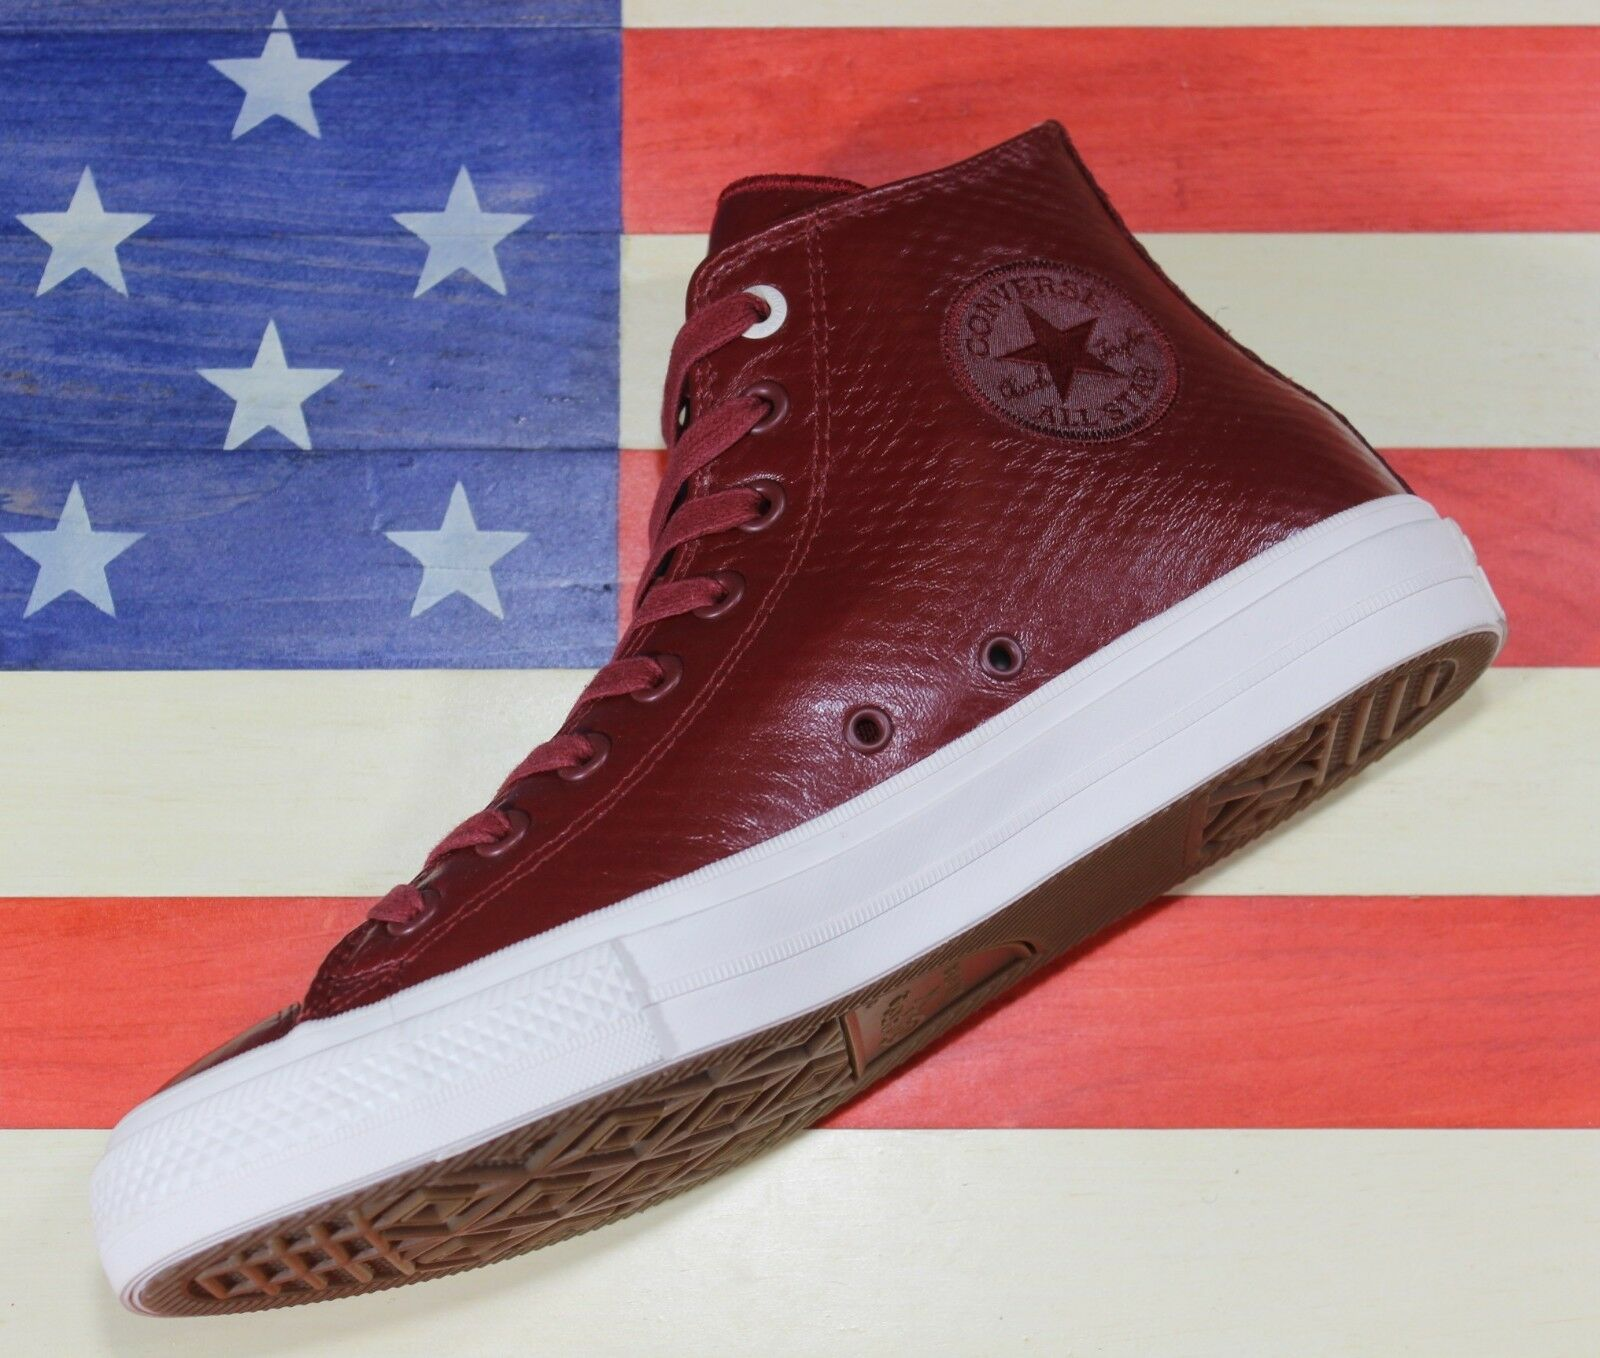 CONVERSE SAMPLE Chuck Taylor ALL-STAR II 2 HI Red Maroon Pelle [153553C] sz 9